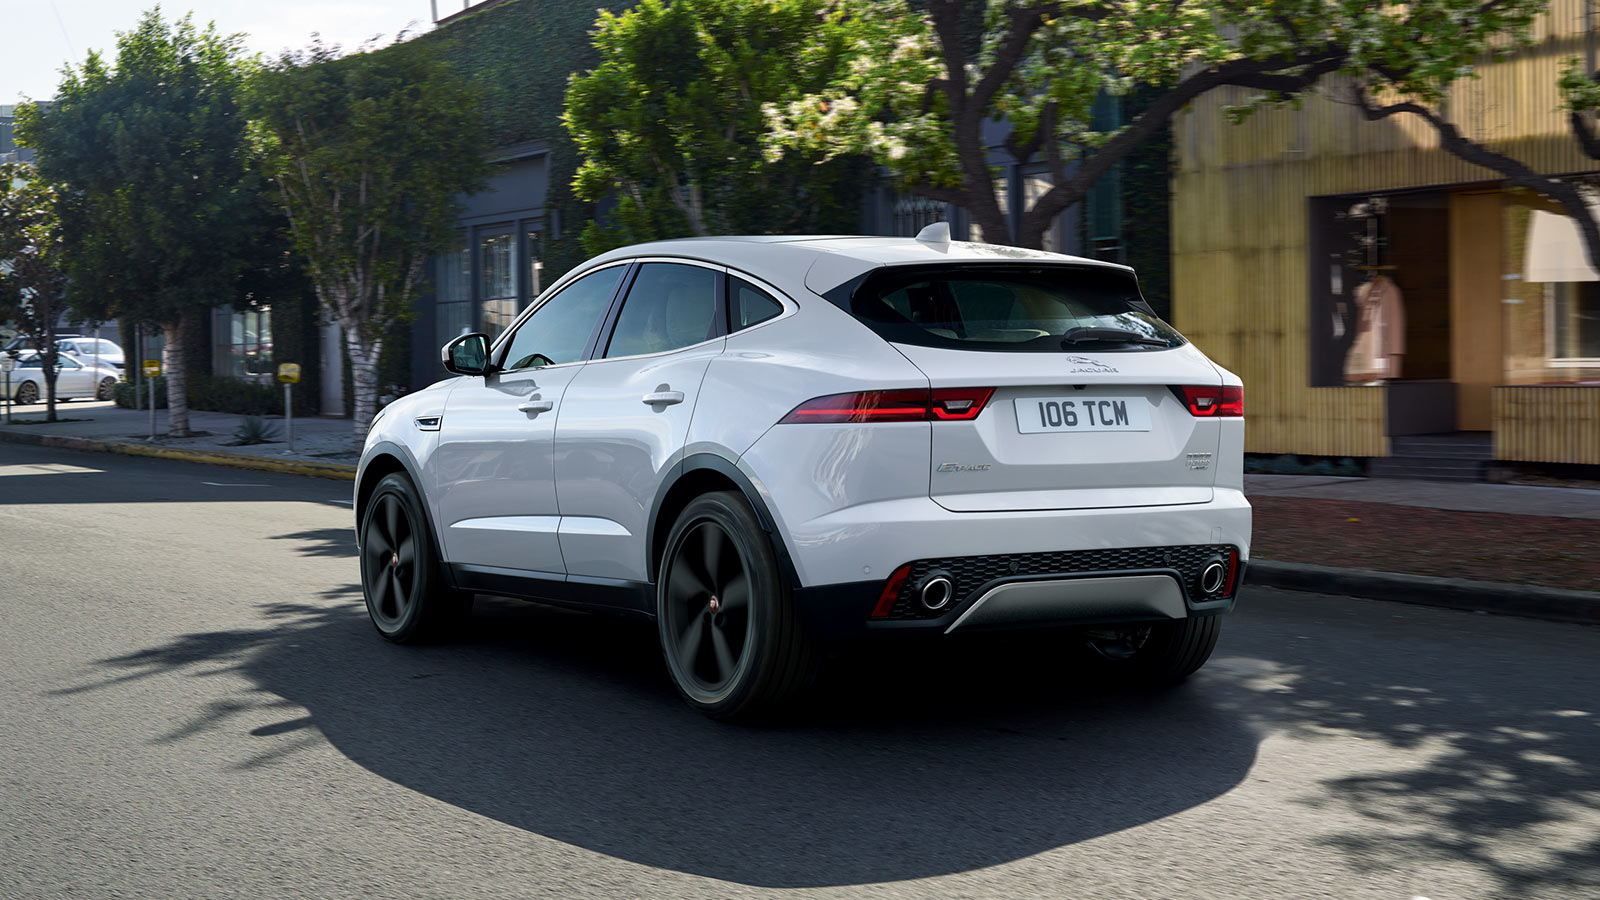 E-PACE S IN BORASCO GREY WITH OPTIONAL FEATURES FITTED DRIVING PAST SHOPS IN A CITY.